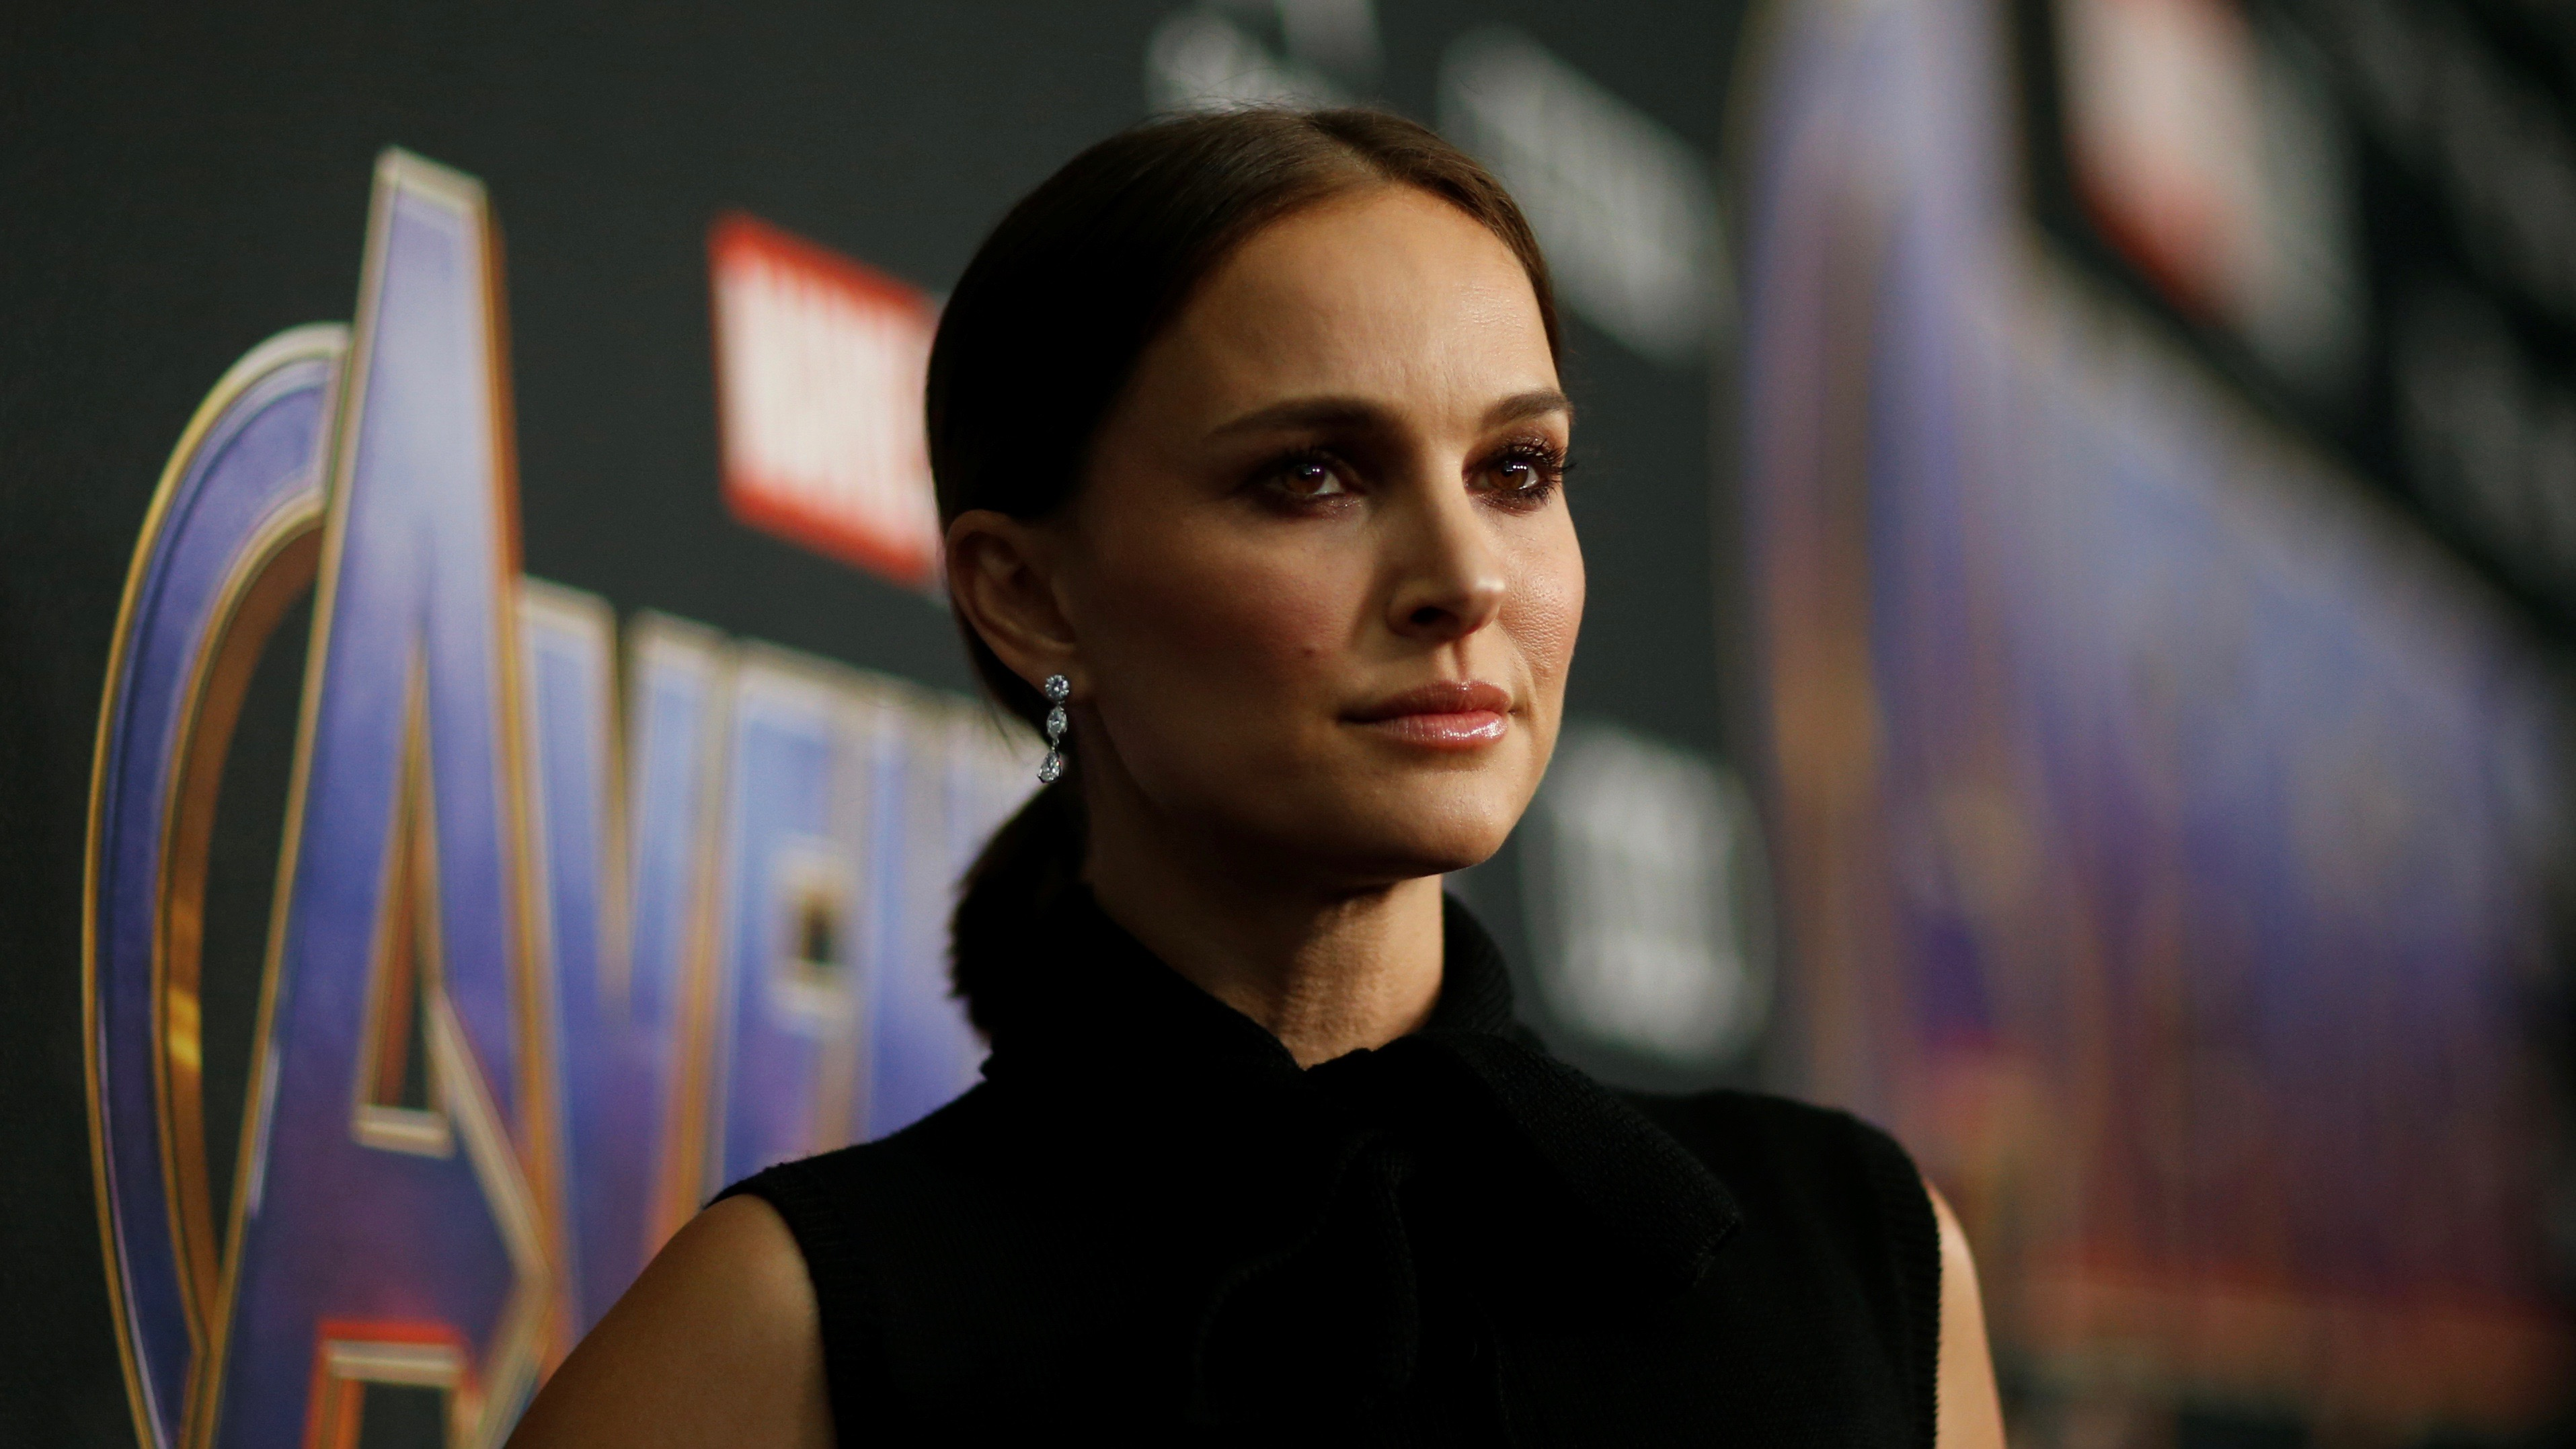 Natalie Portman is Marvel's new Thor and Mahershala Ali is Blade